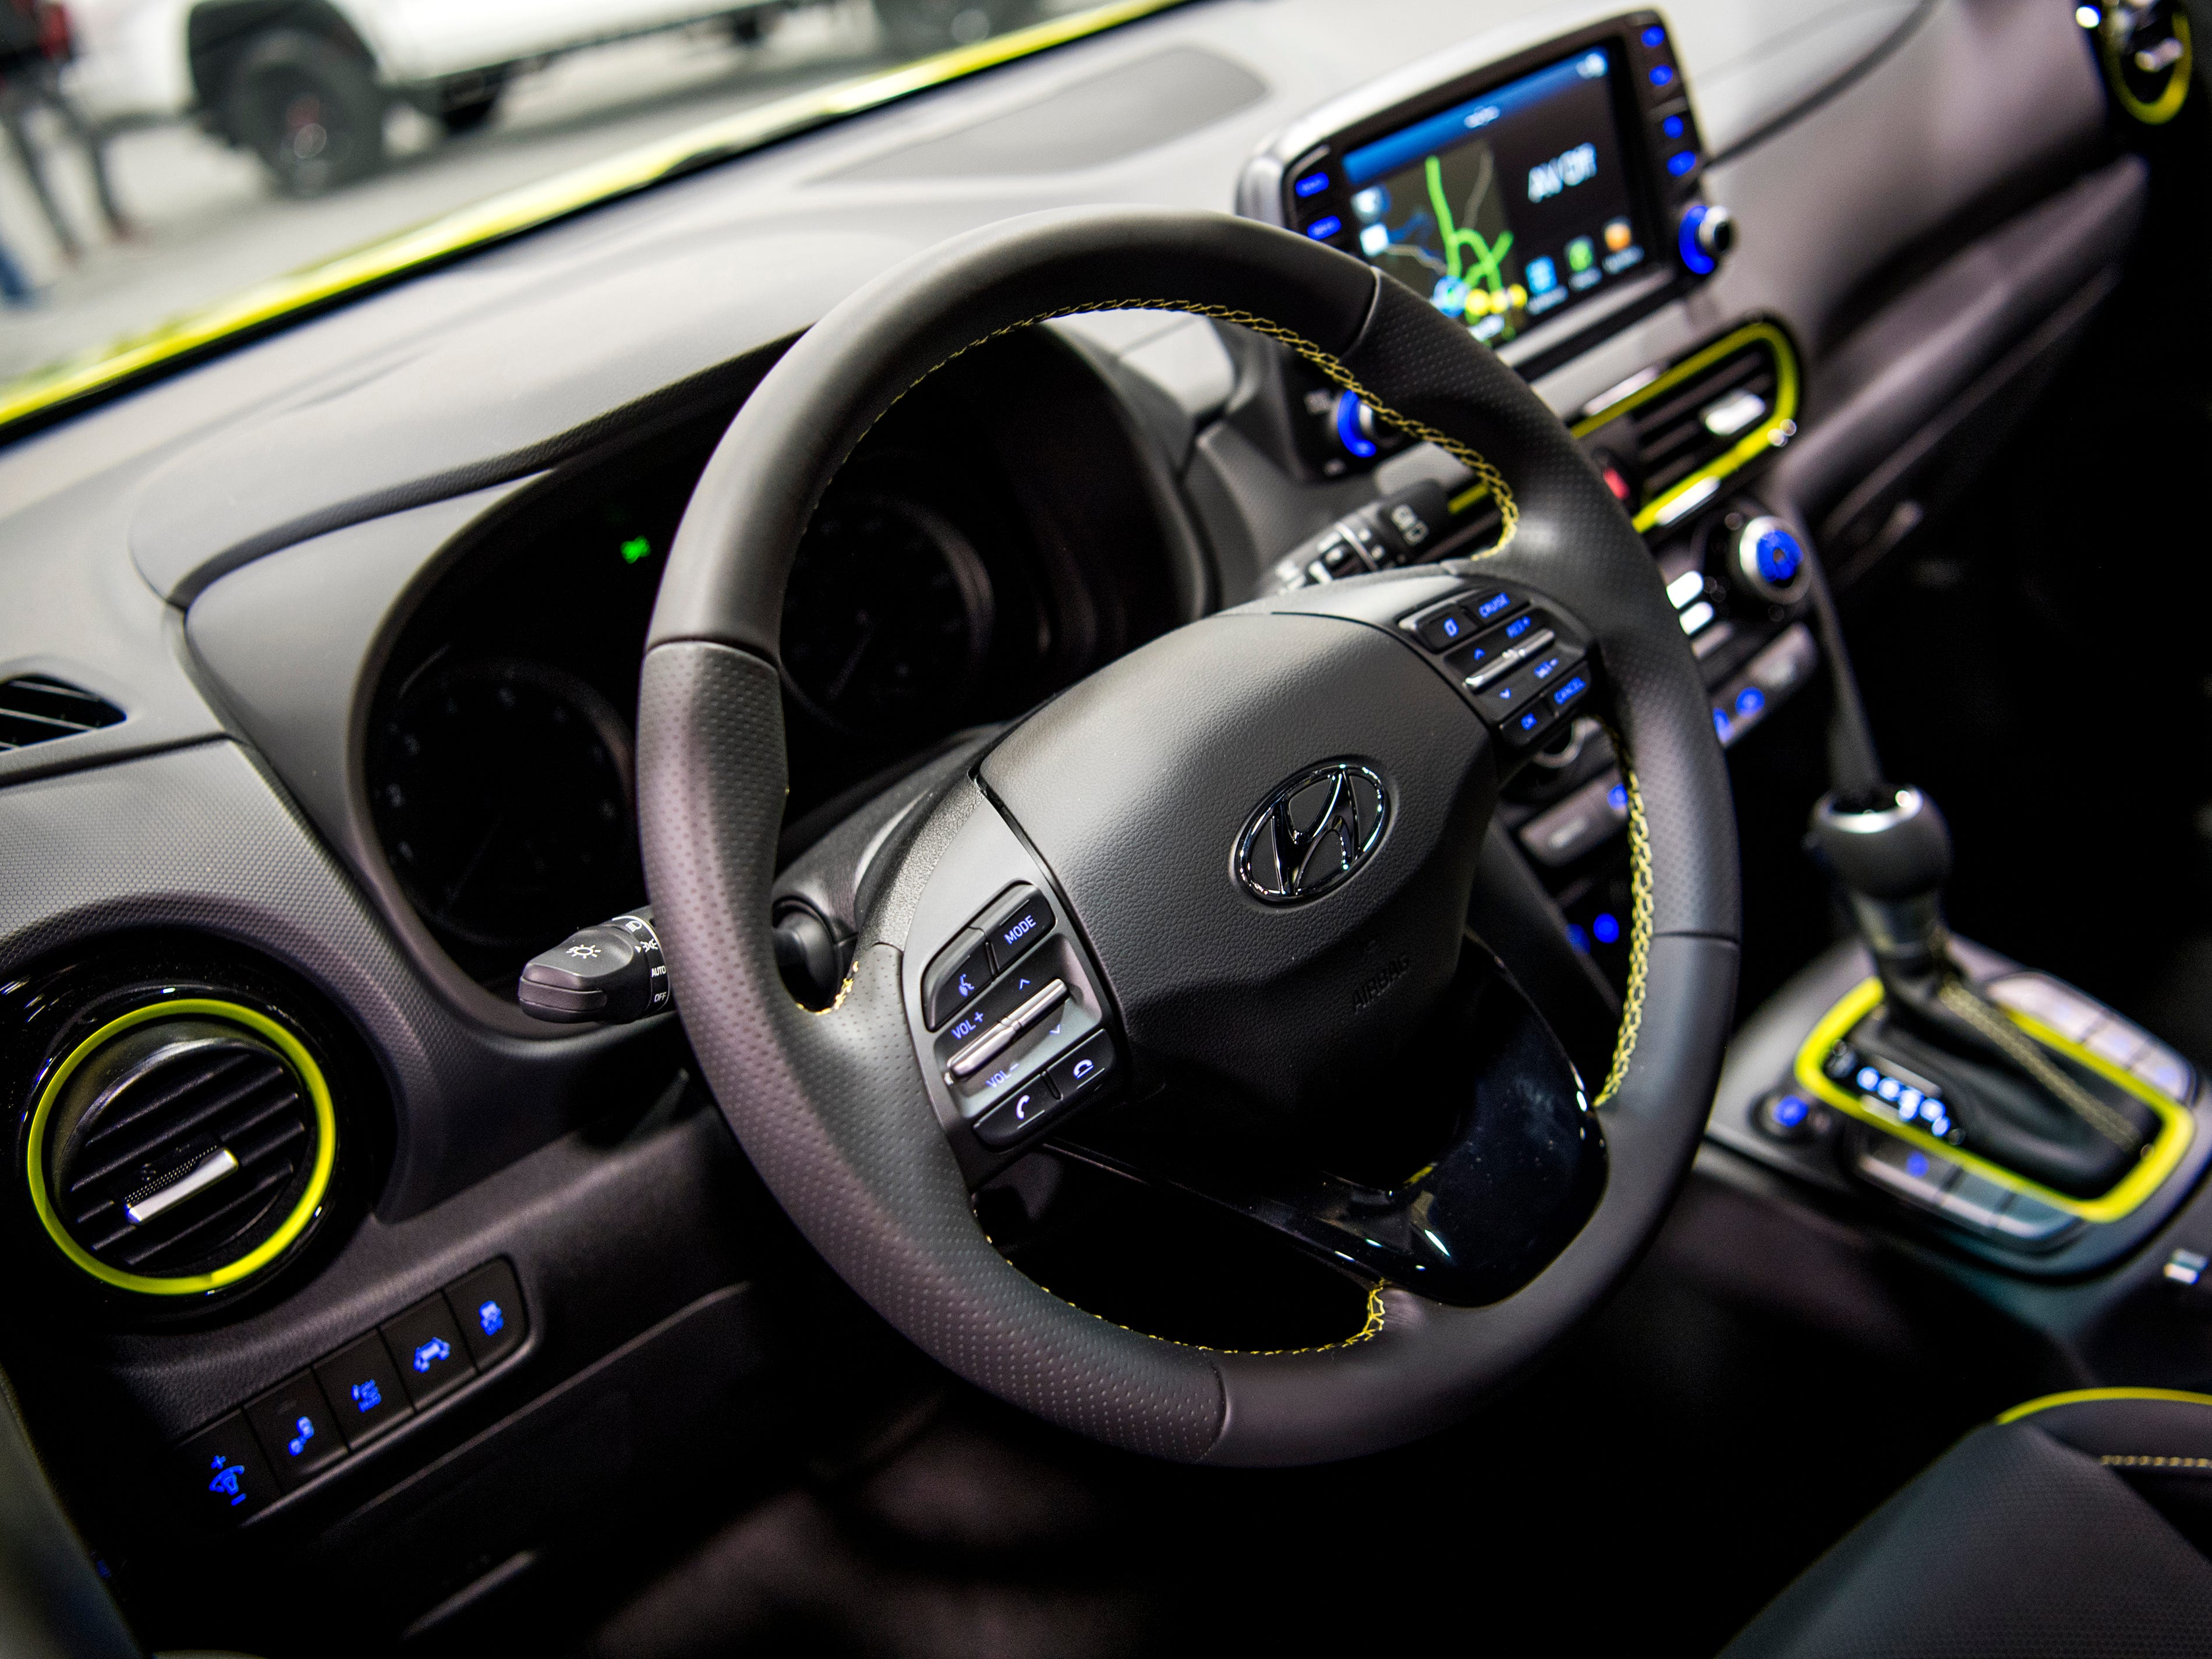 The Hyundai Kona at the Knox News Auto Show held at the Knoxville Convention Center on Friday, February 22, 2019.